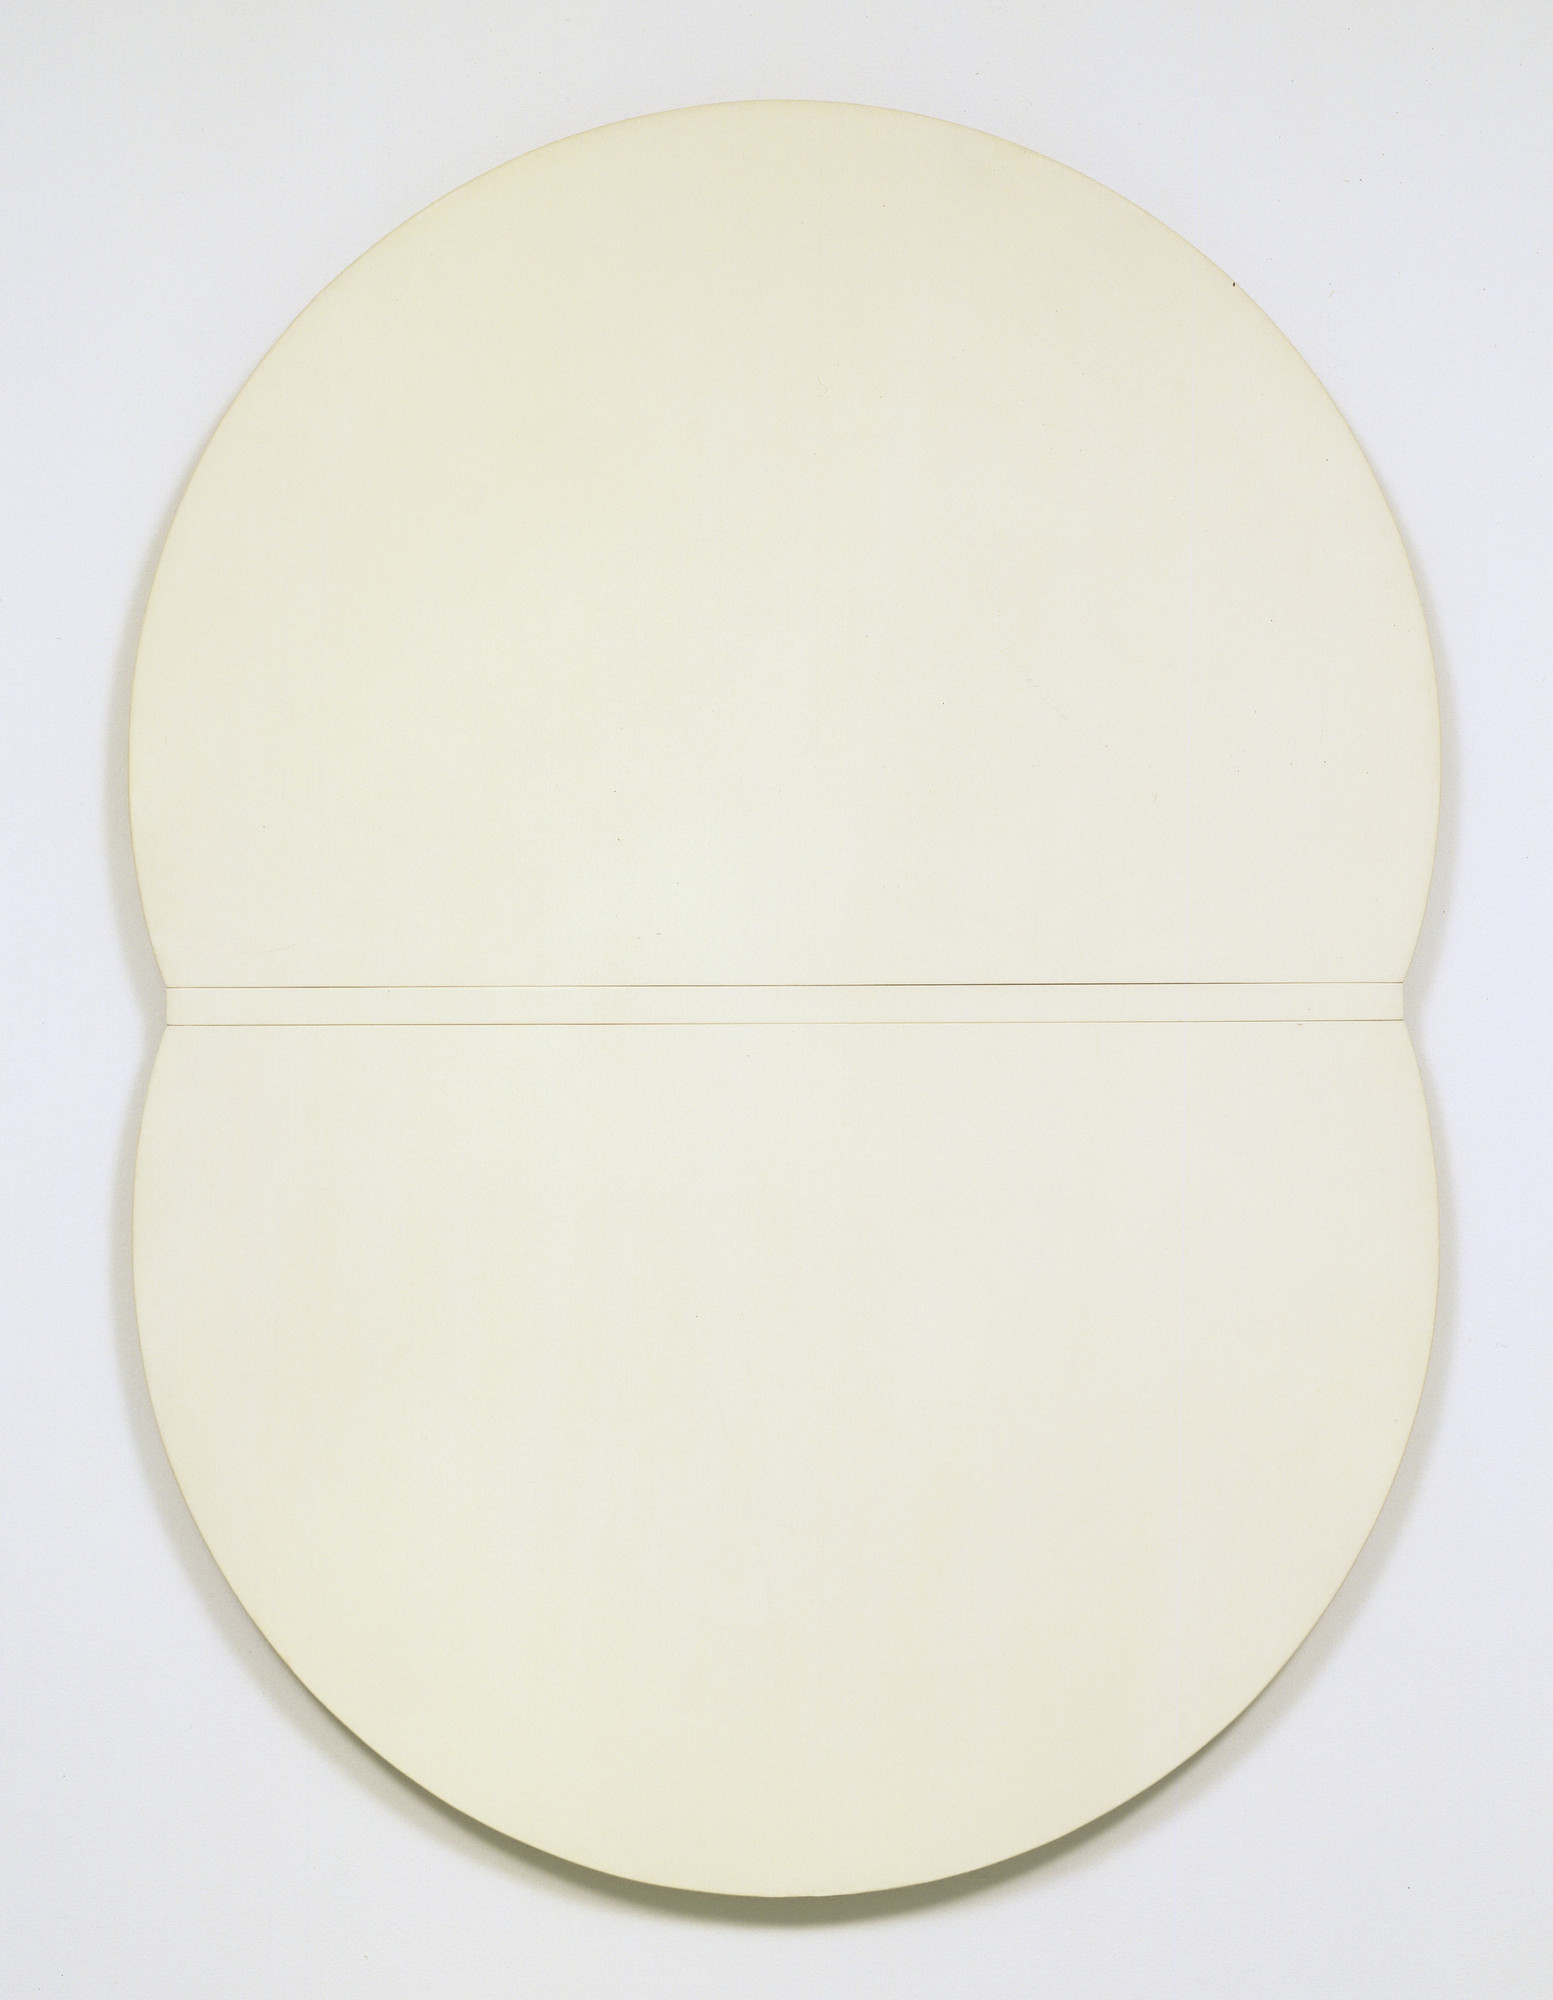 Ellsworth Kelly. White Plaque: Bridge Arch and Reflection. 1952-55